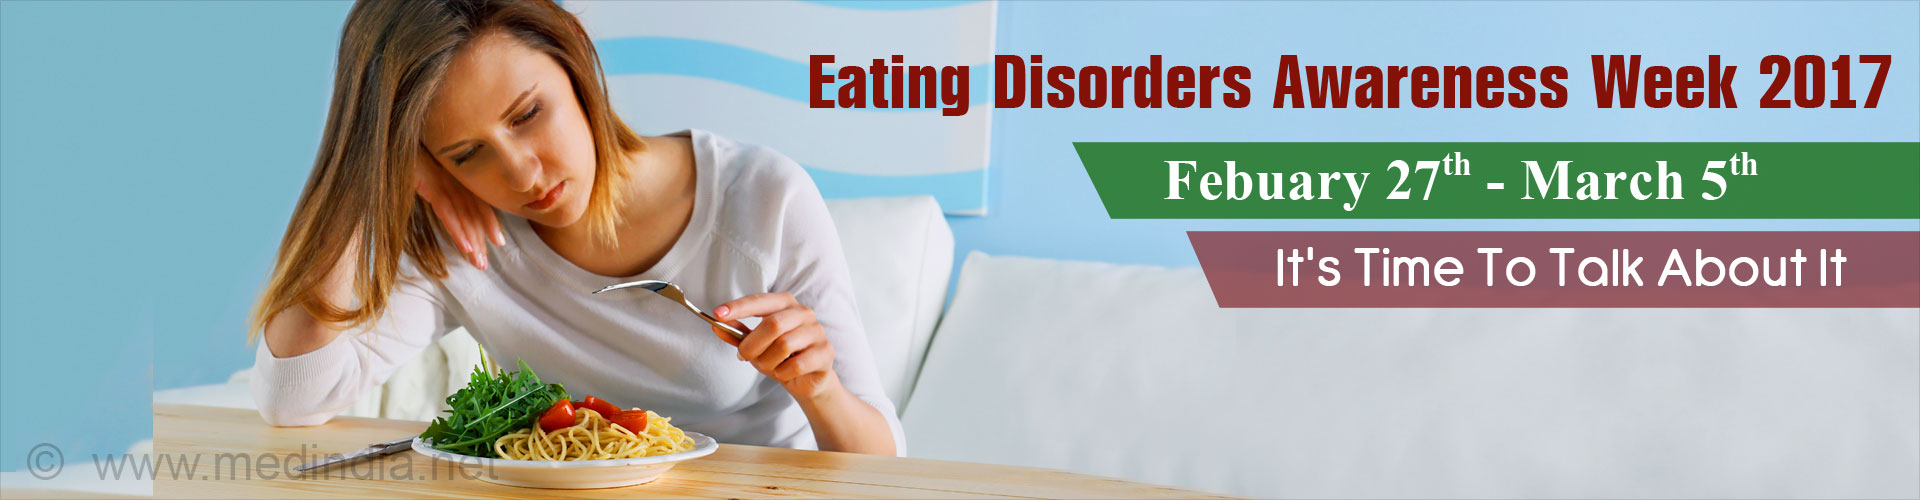 Eating Disorders Awareness Week 2017